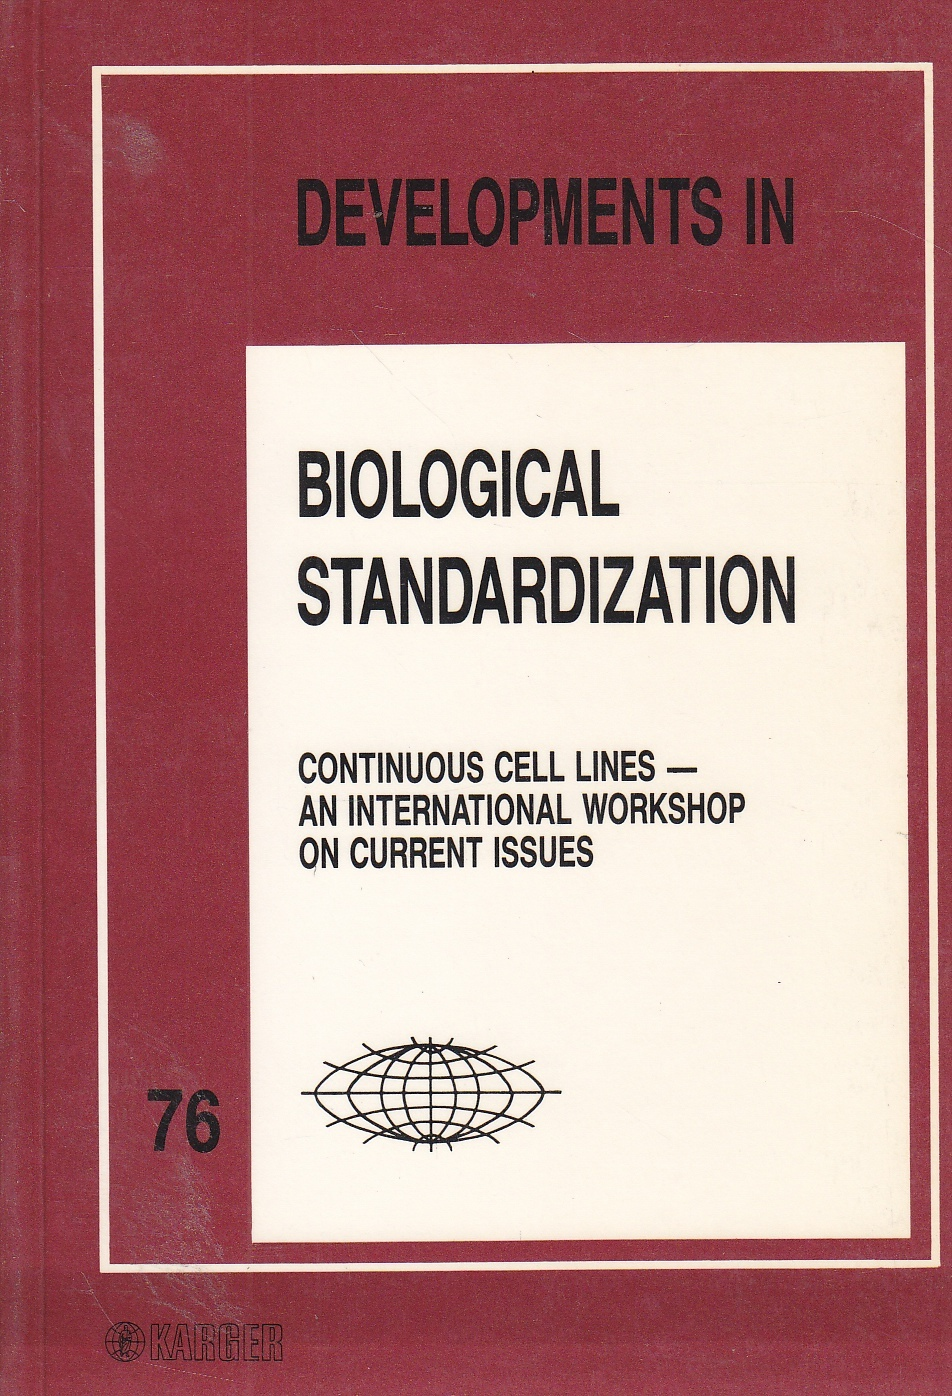 Image for Developments in Biological Standardization Volume 76 Continuous Cell Lines - an International Workshop on Current Issues